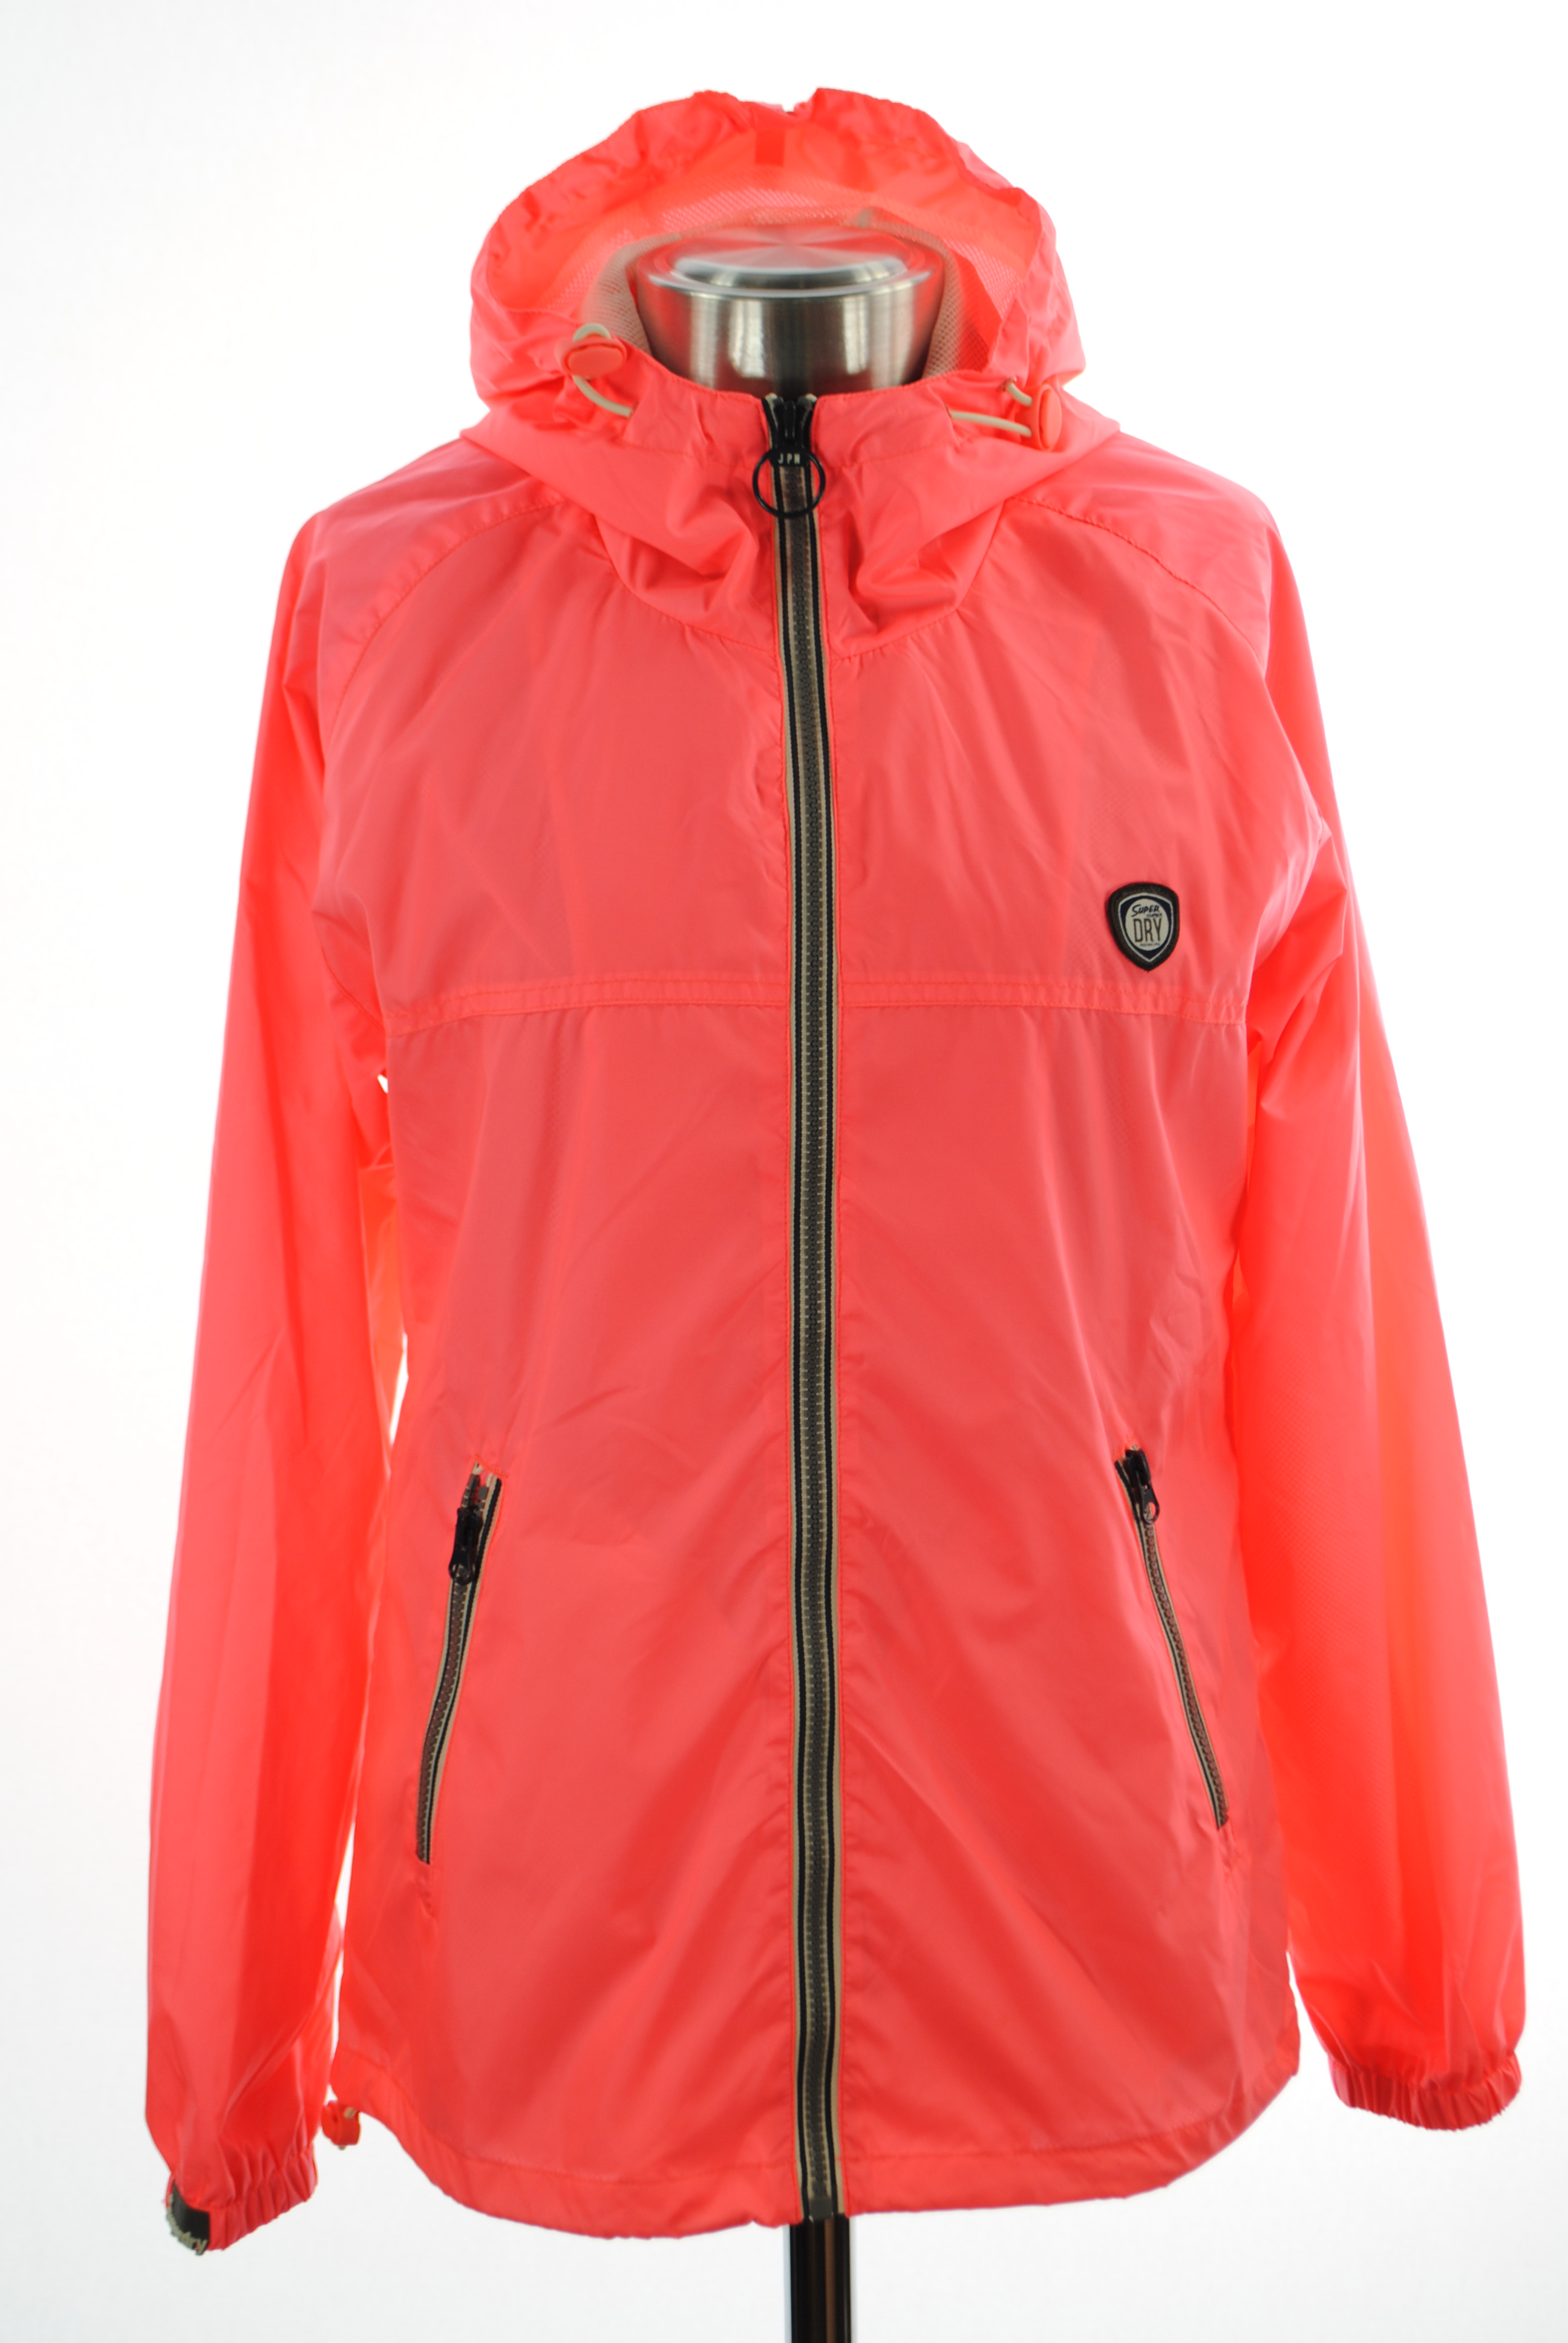 New-Womens-Superdry-Zip-Through-Cagoule-Jacket-Pop-Coral-Pink-AE